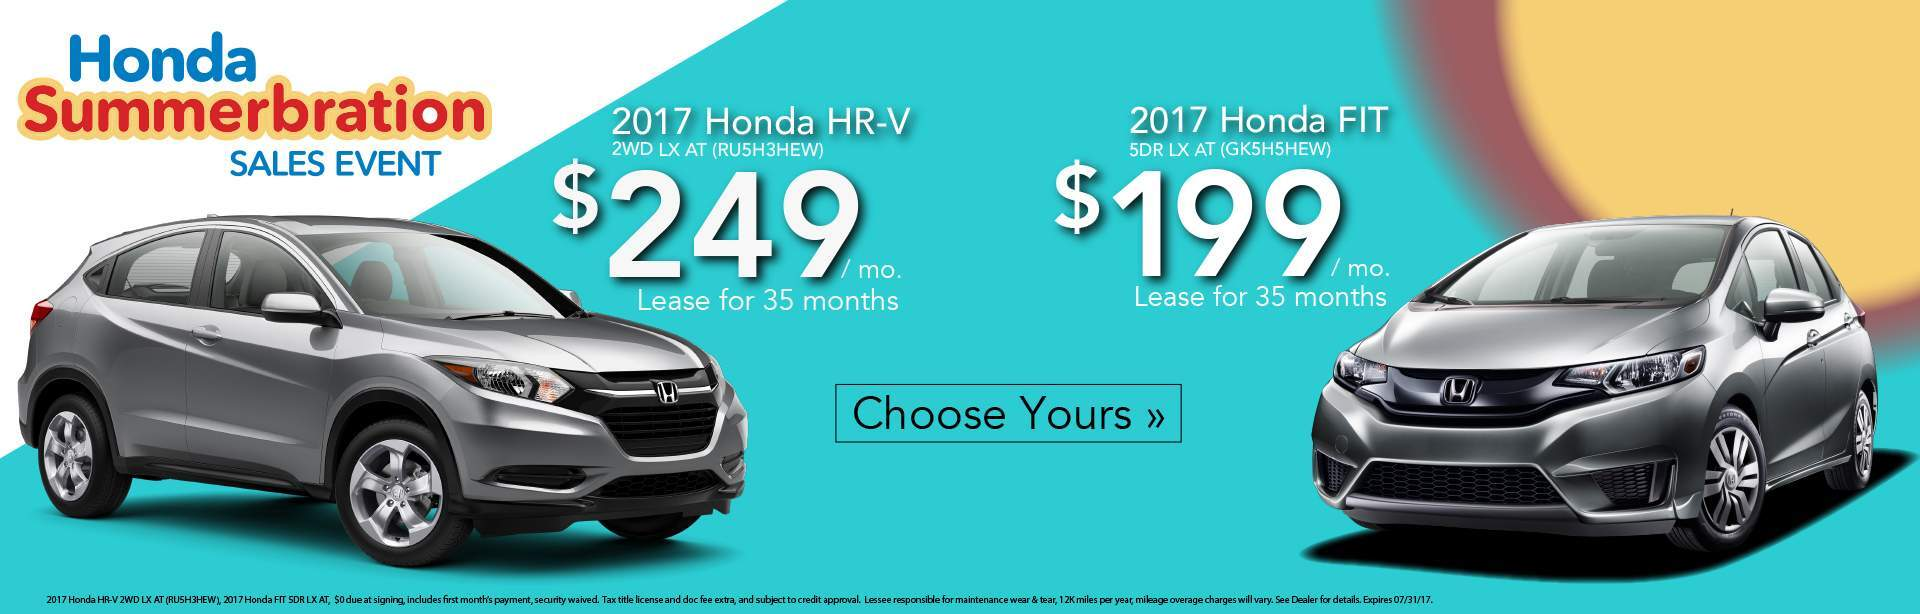 Honda Fit and HRV Lease